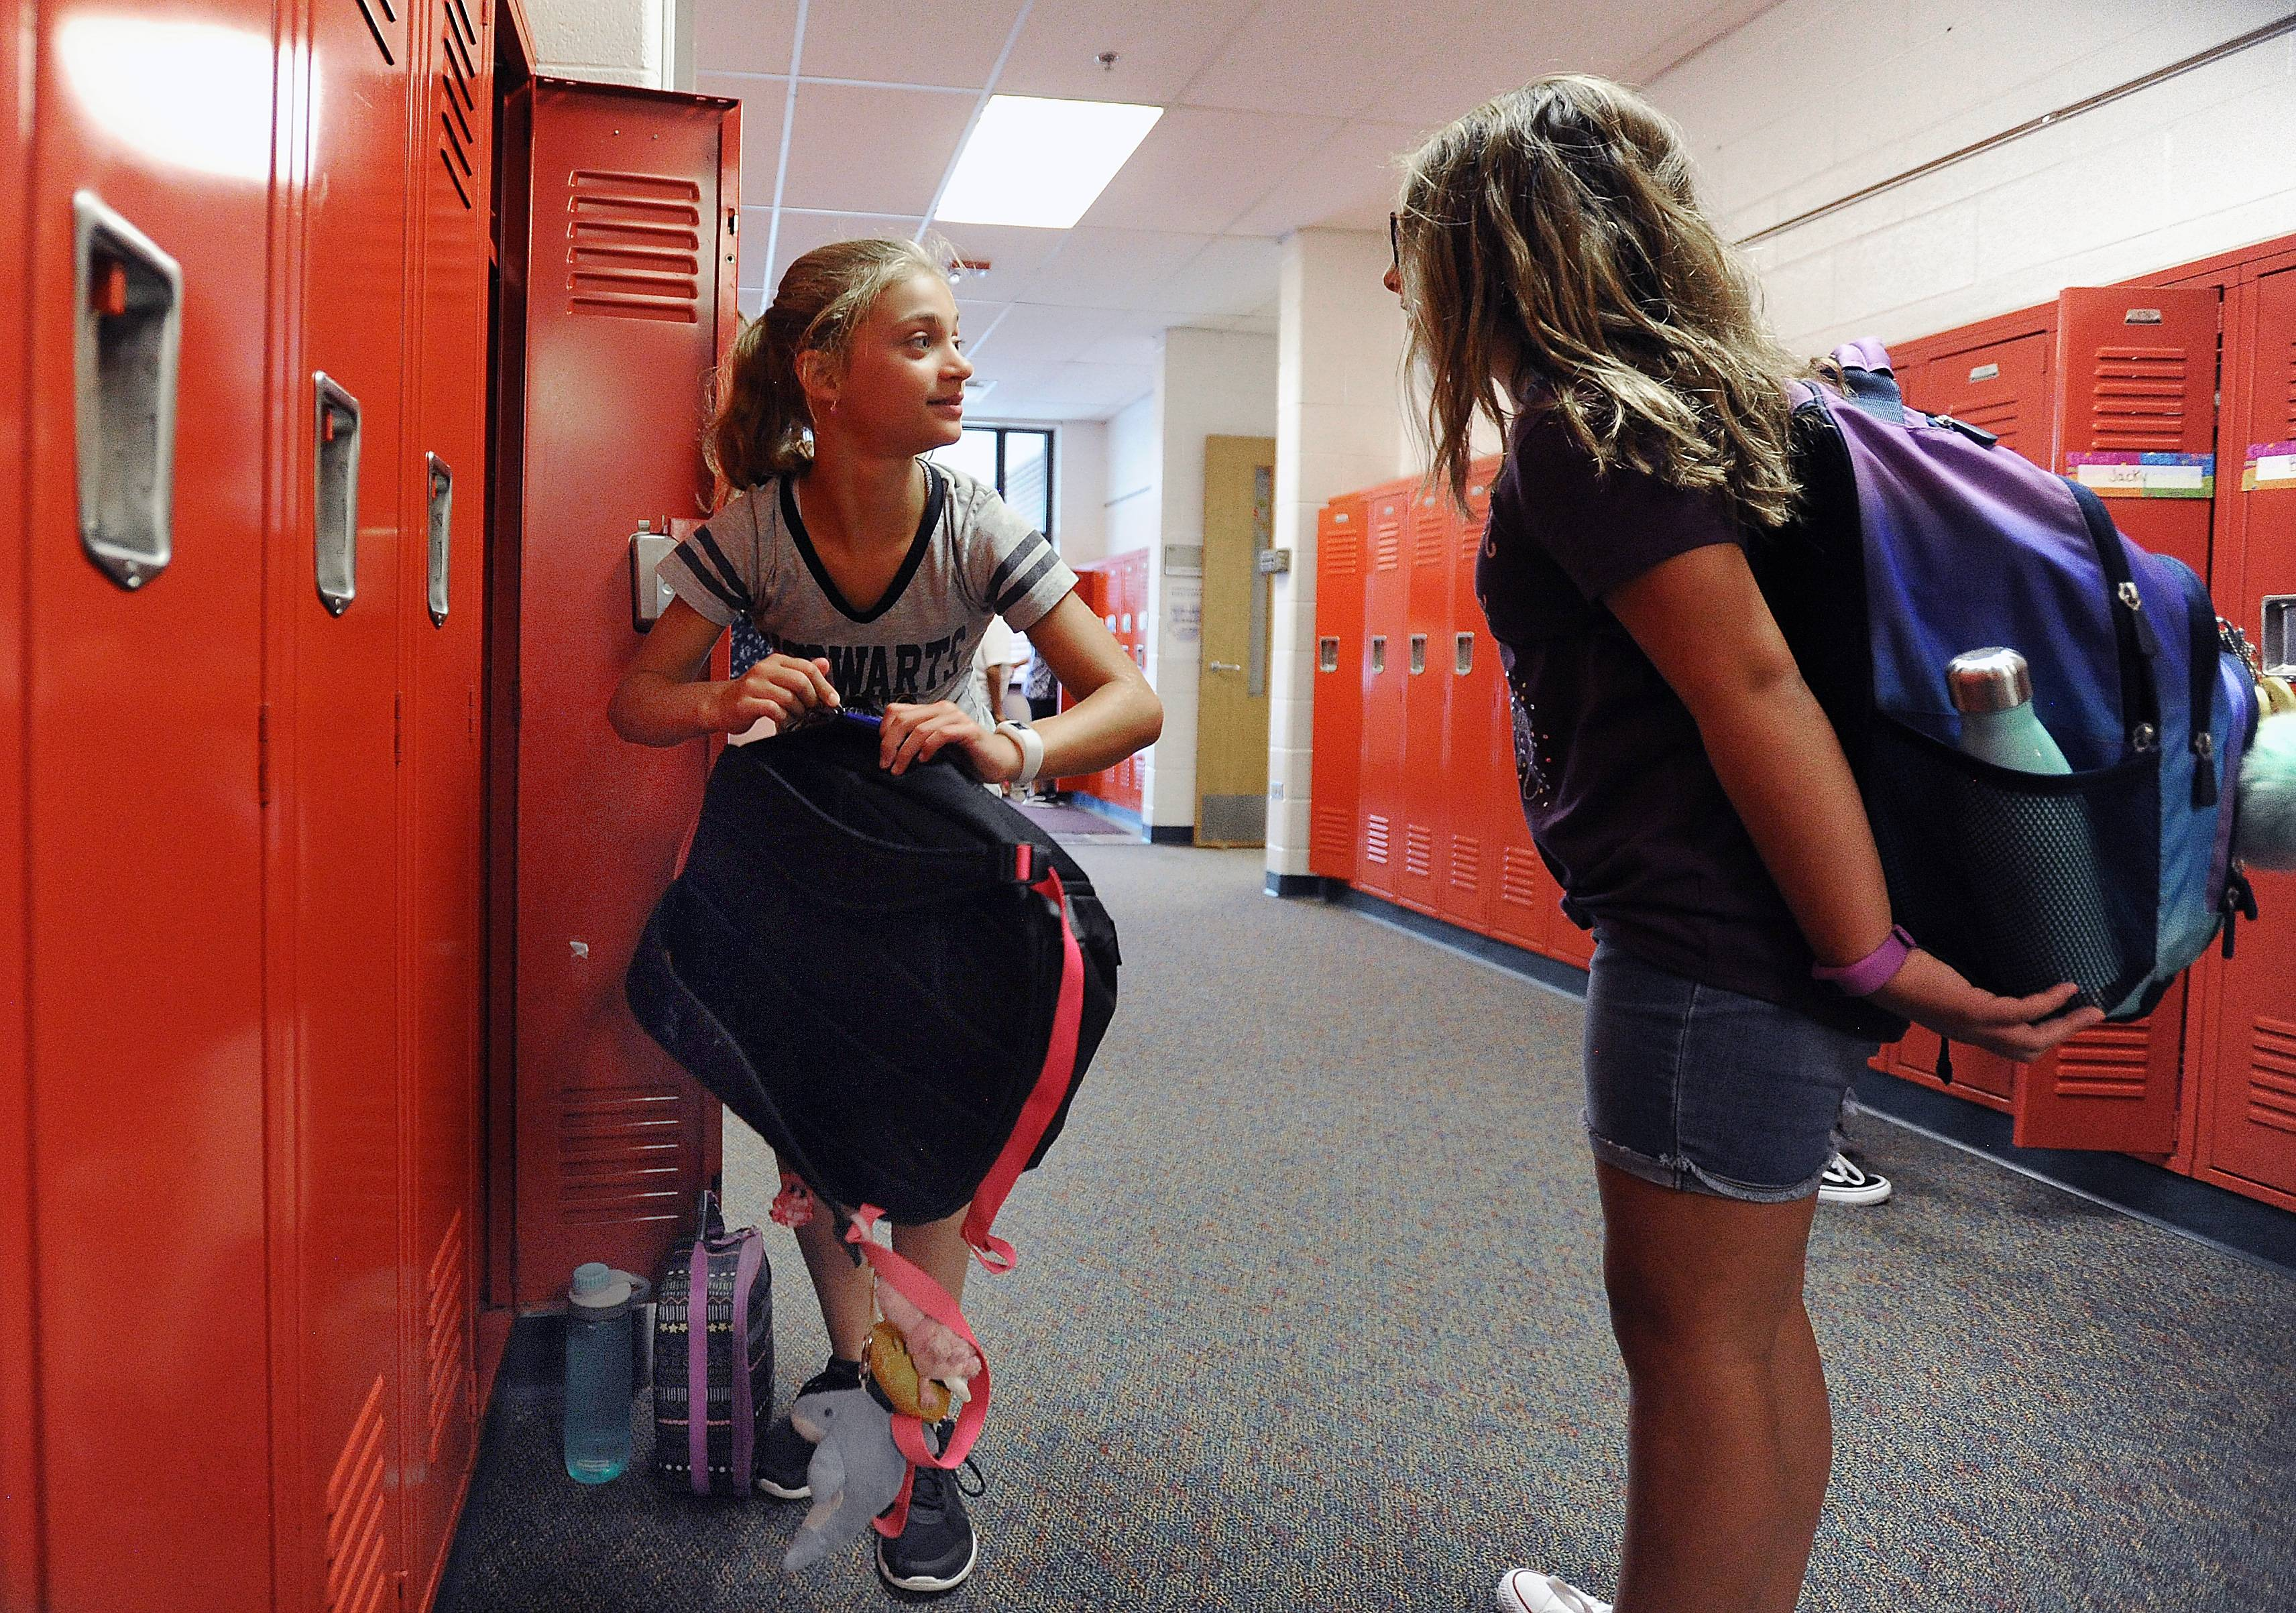 """It's going to be good"" is how Isabel Steinbach, 11, of Palatine described her first day of school at Virginia Lake Elementary School in Palatine as she talks to a fellow 6th grader before heading off to class Wednesday."